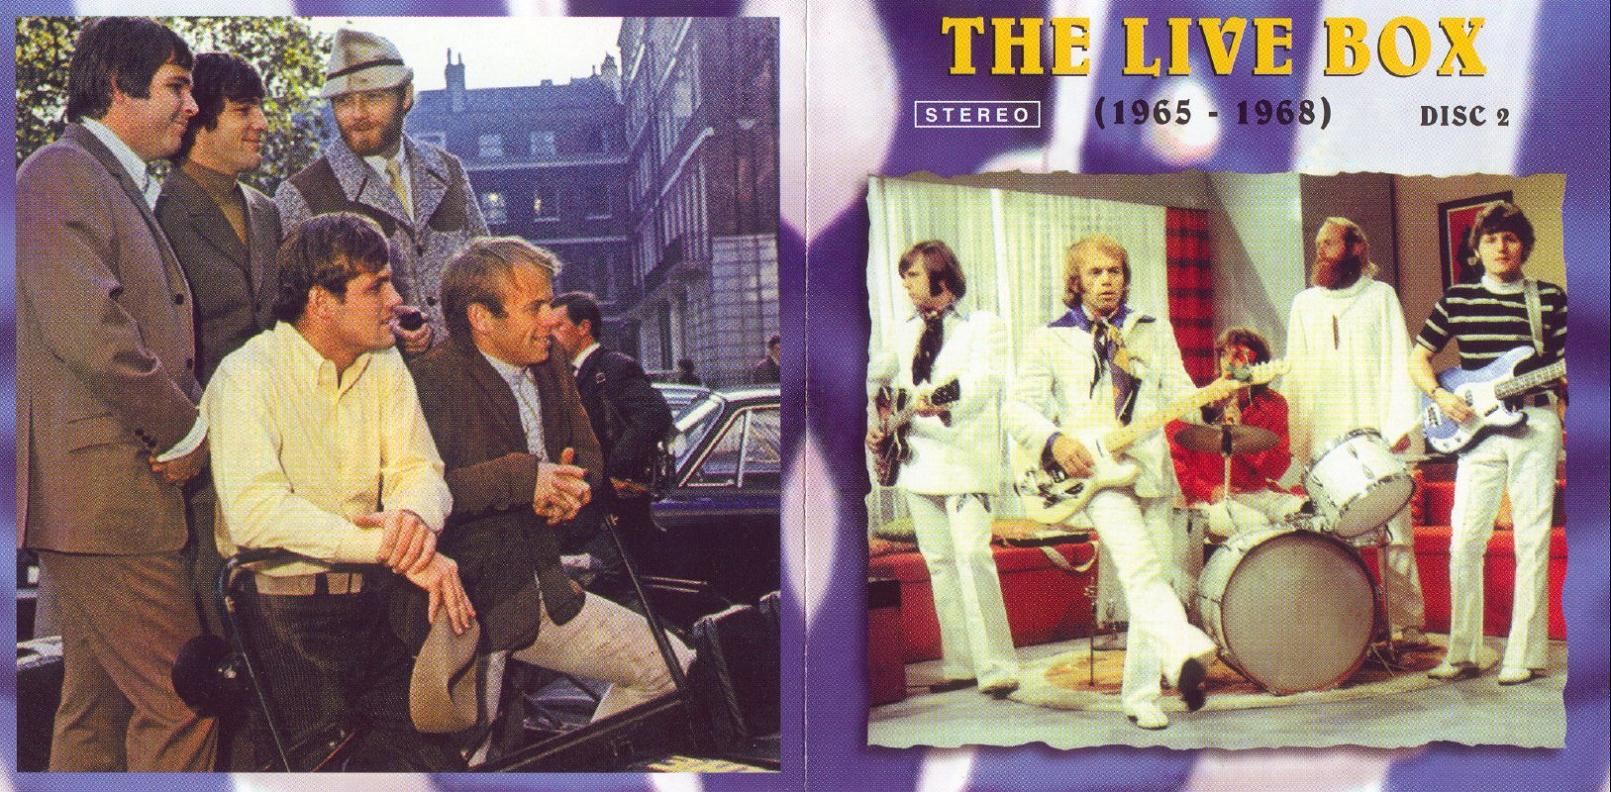 1966-10-22-The_Live_Box-cd2-front